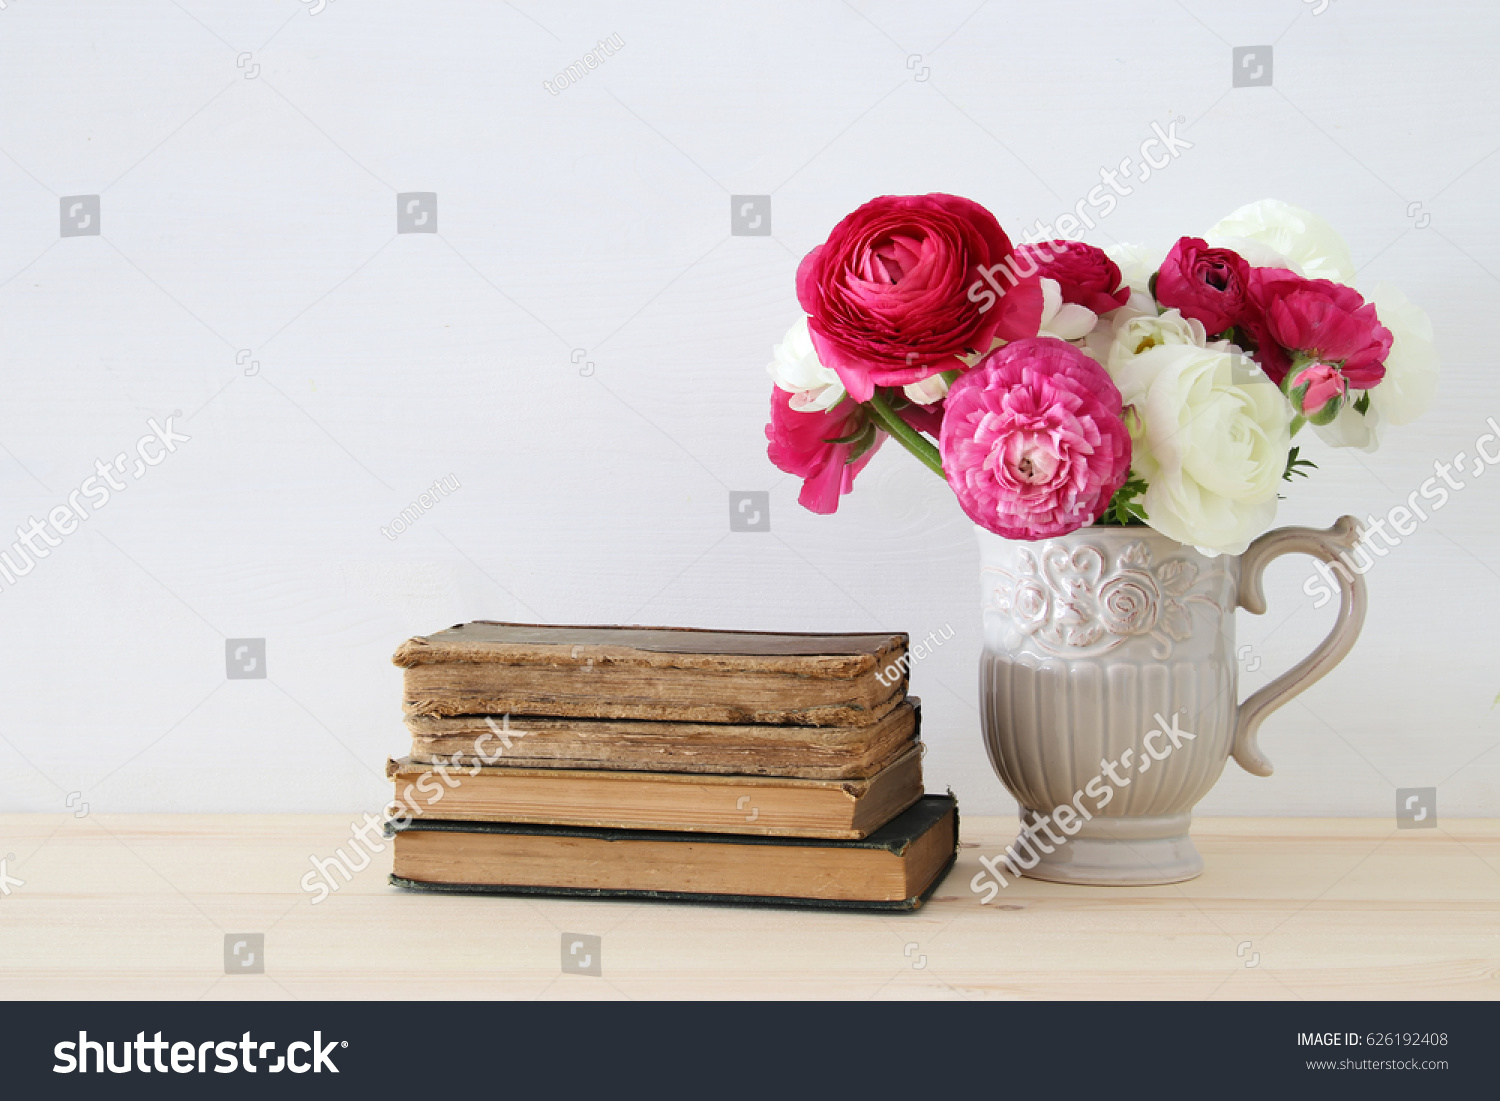 Flowers in vase next day delivery - Beautiful Bouquet Of Spring Flowers In The Vase Next To Old Books On Wooden Table